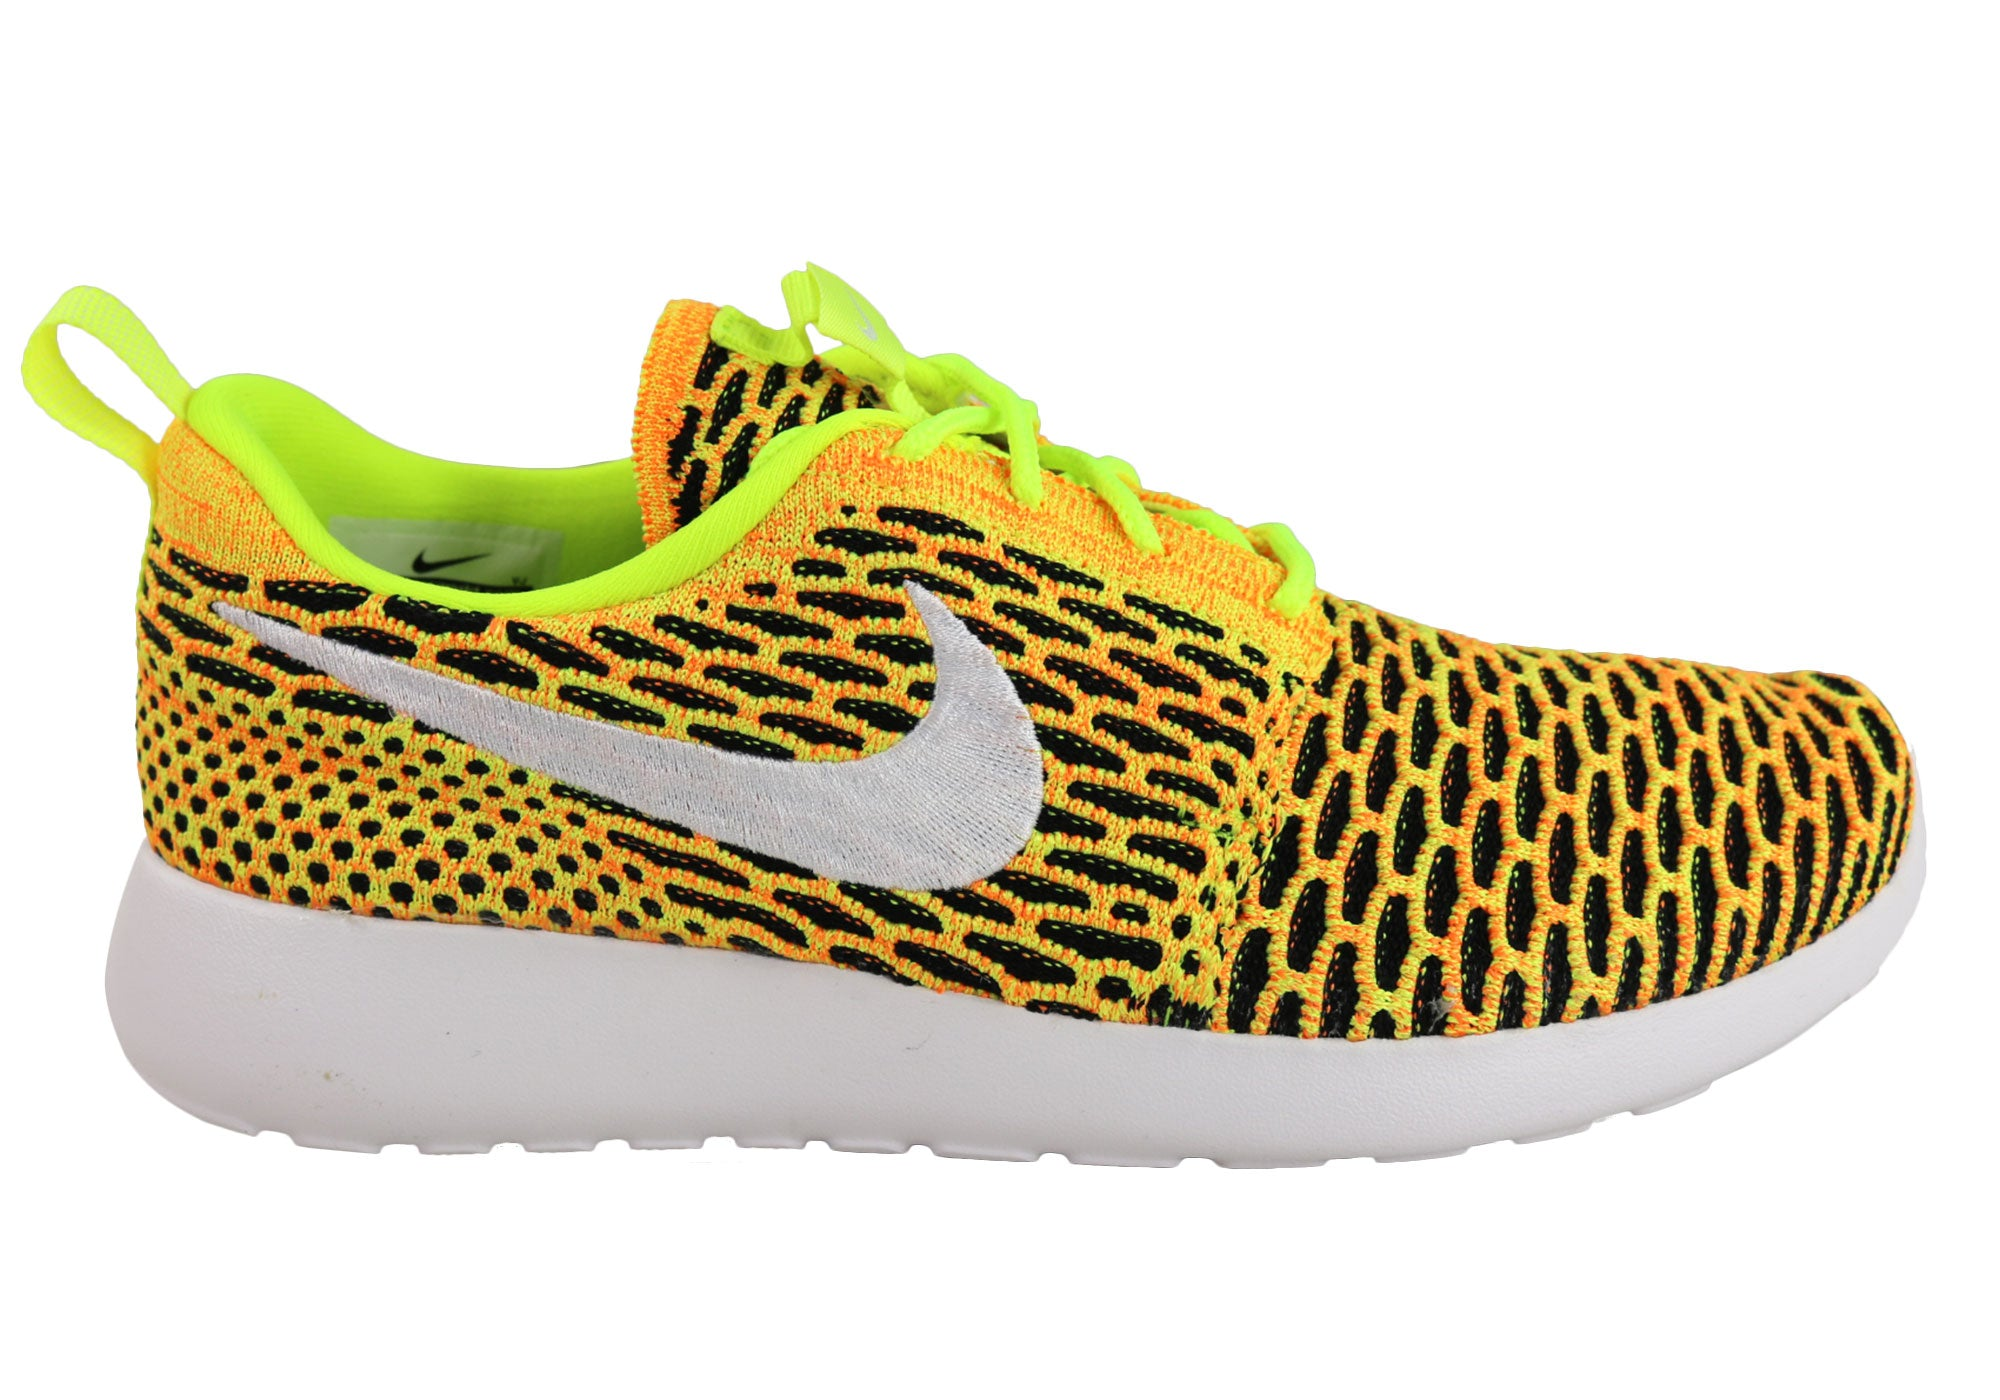 a3f1be41b048 New Nike Womens Roshe One Flyknit Trainers Sport Shoes